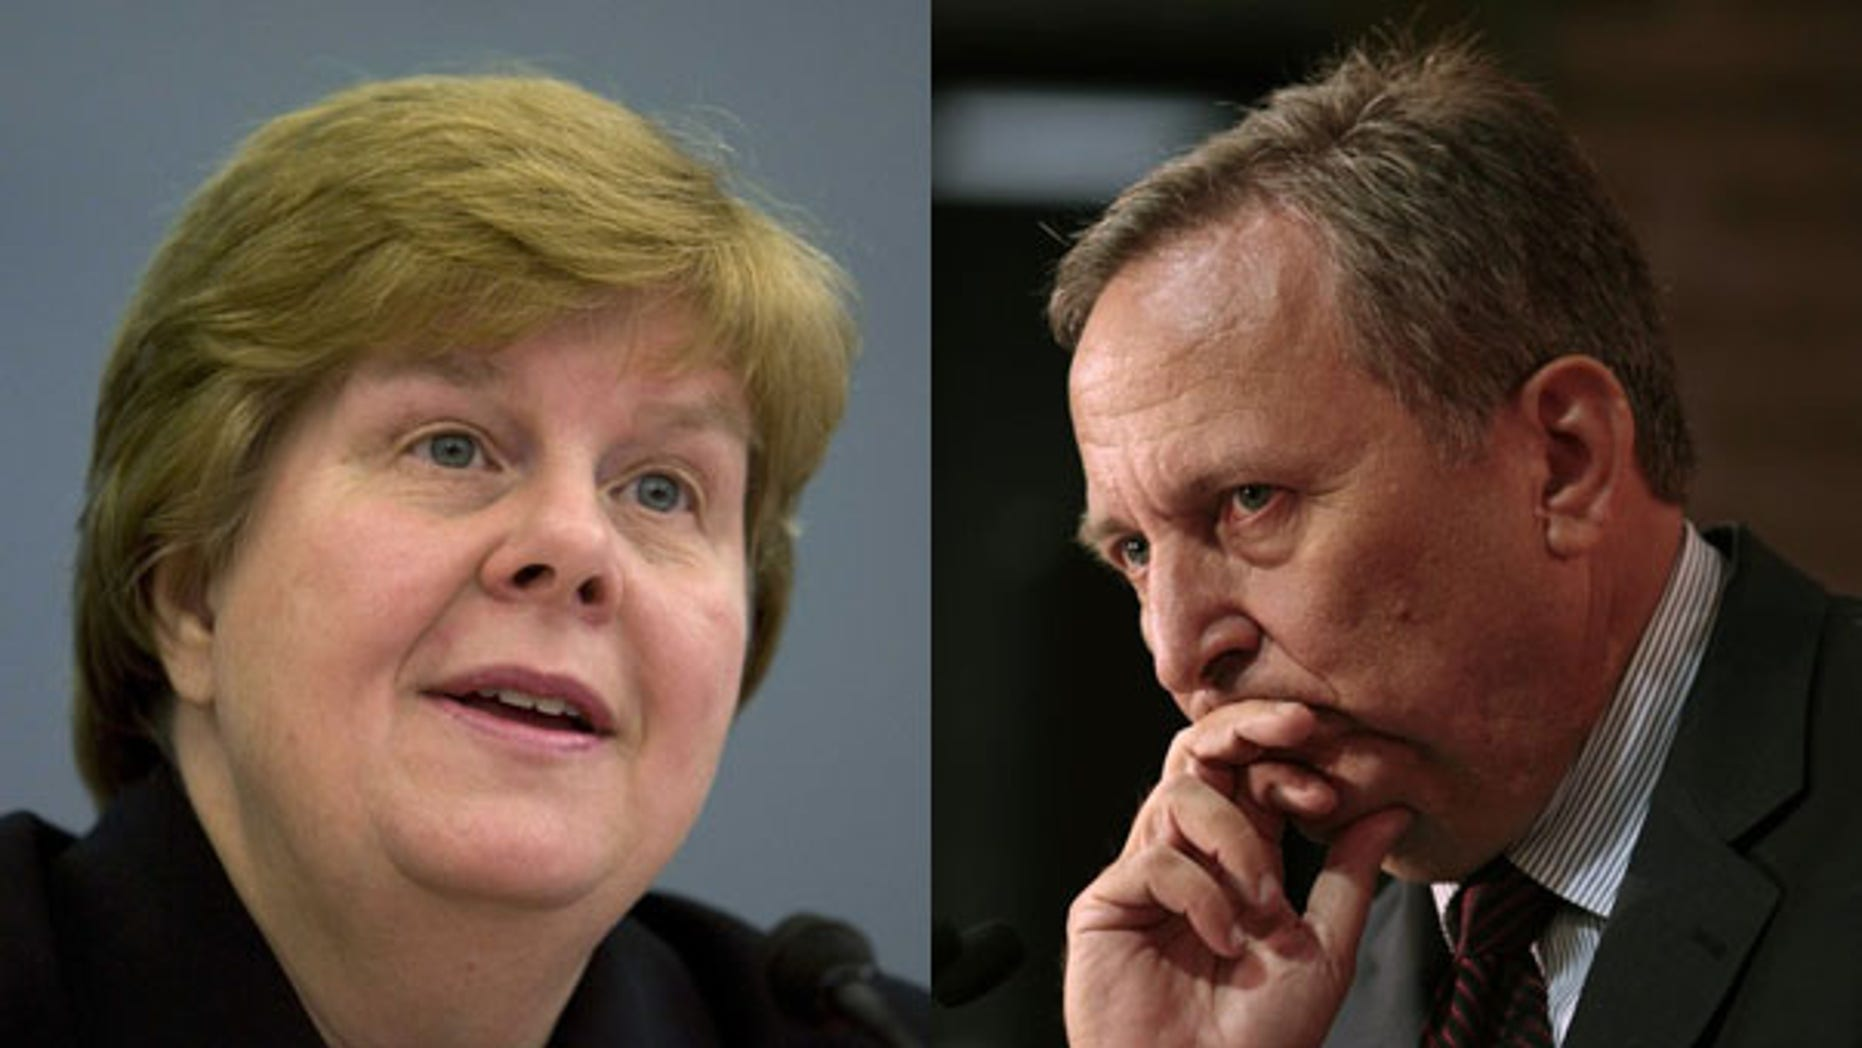 Christina Romer, chairwoman of the Council of Economic Advisers, left, and Larry Summers, director of the National Economic Council, have differing takes on whether the recession is over. (Reuters Photos)